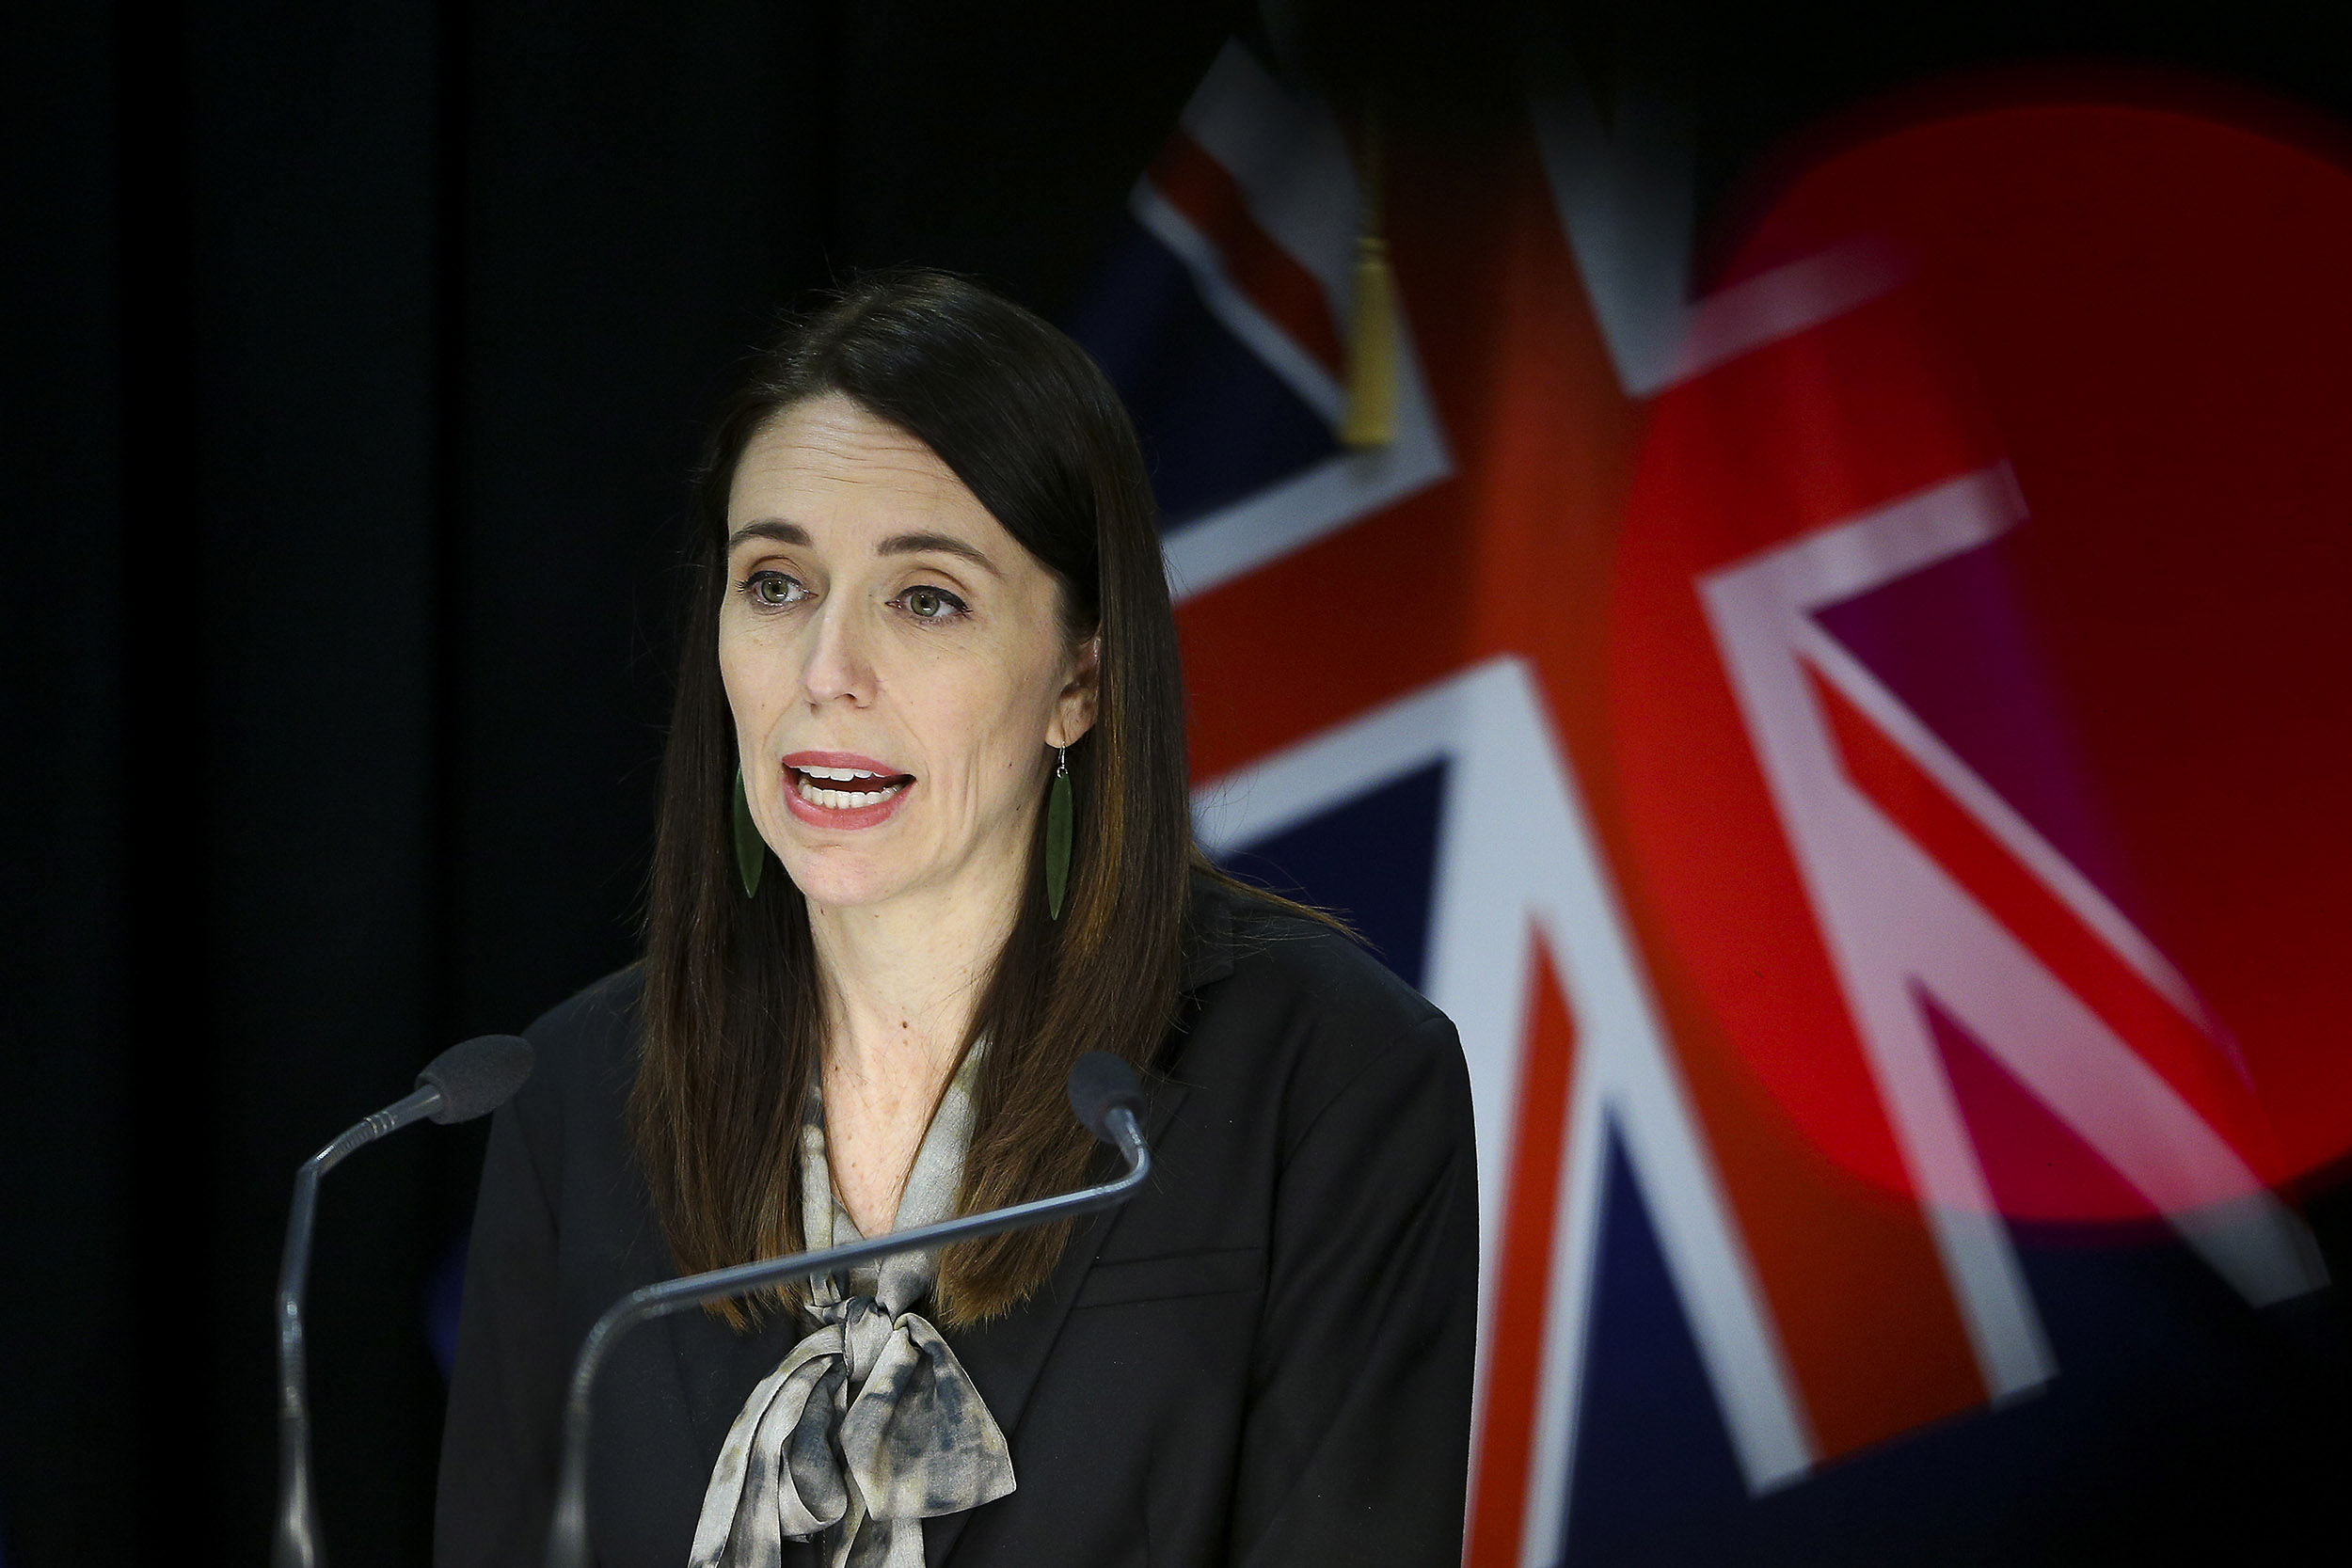 Prime Minister Jacinda Ardern speaks during a news conference at Parliament on August 12, in Wellington, New Zealand.